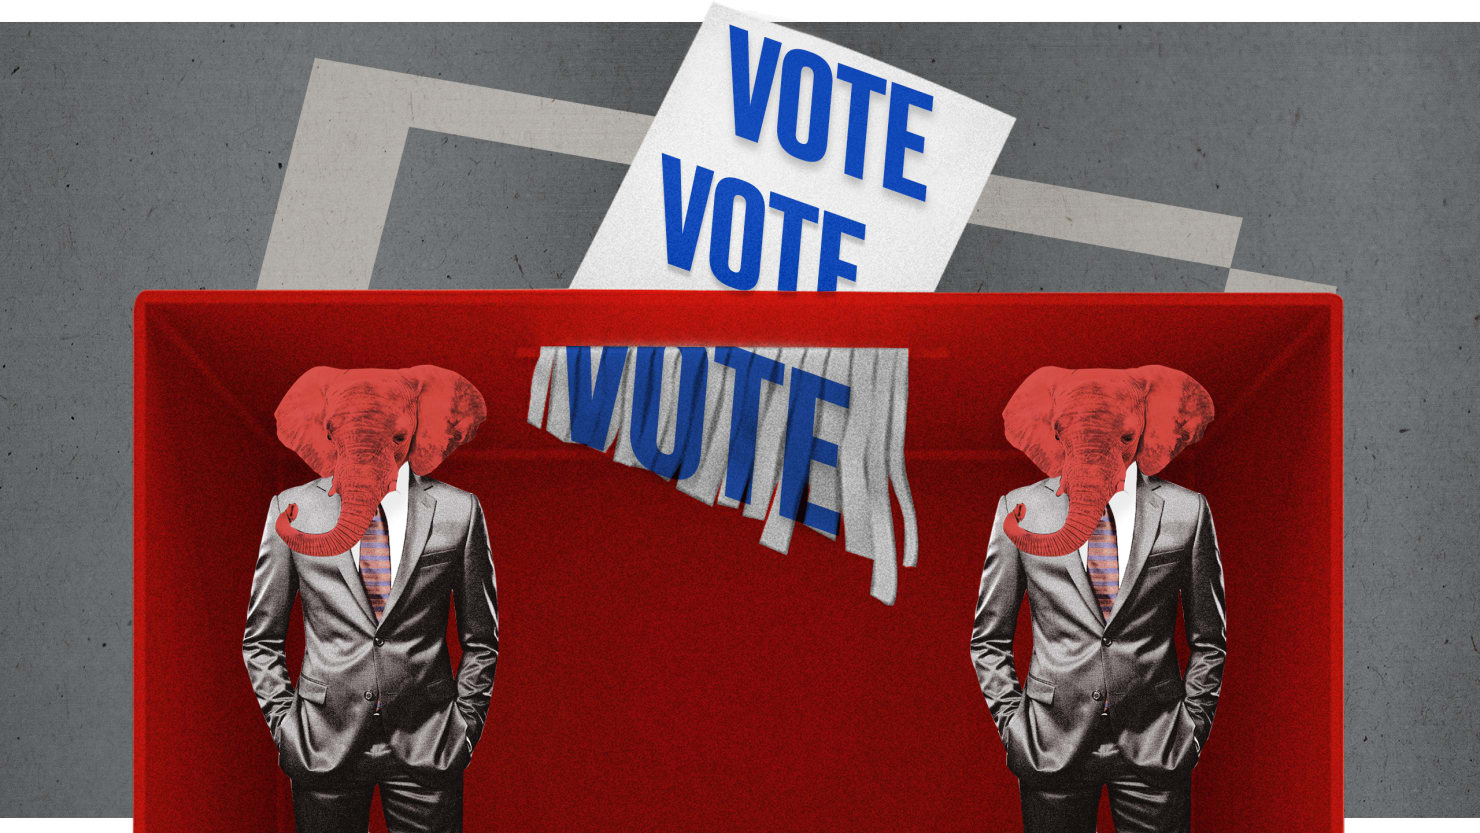 Republicans Have a Secret Weapon in the Midterms: Voter Suppression